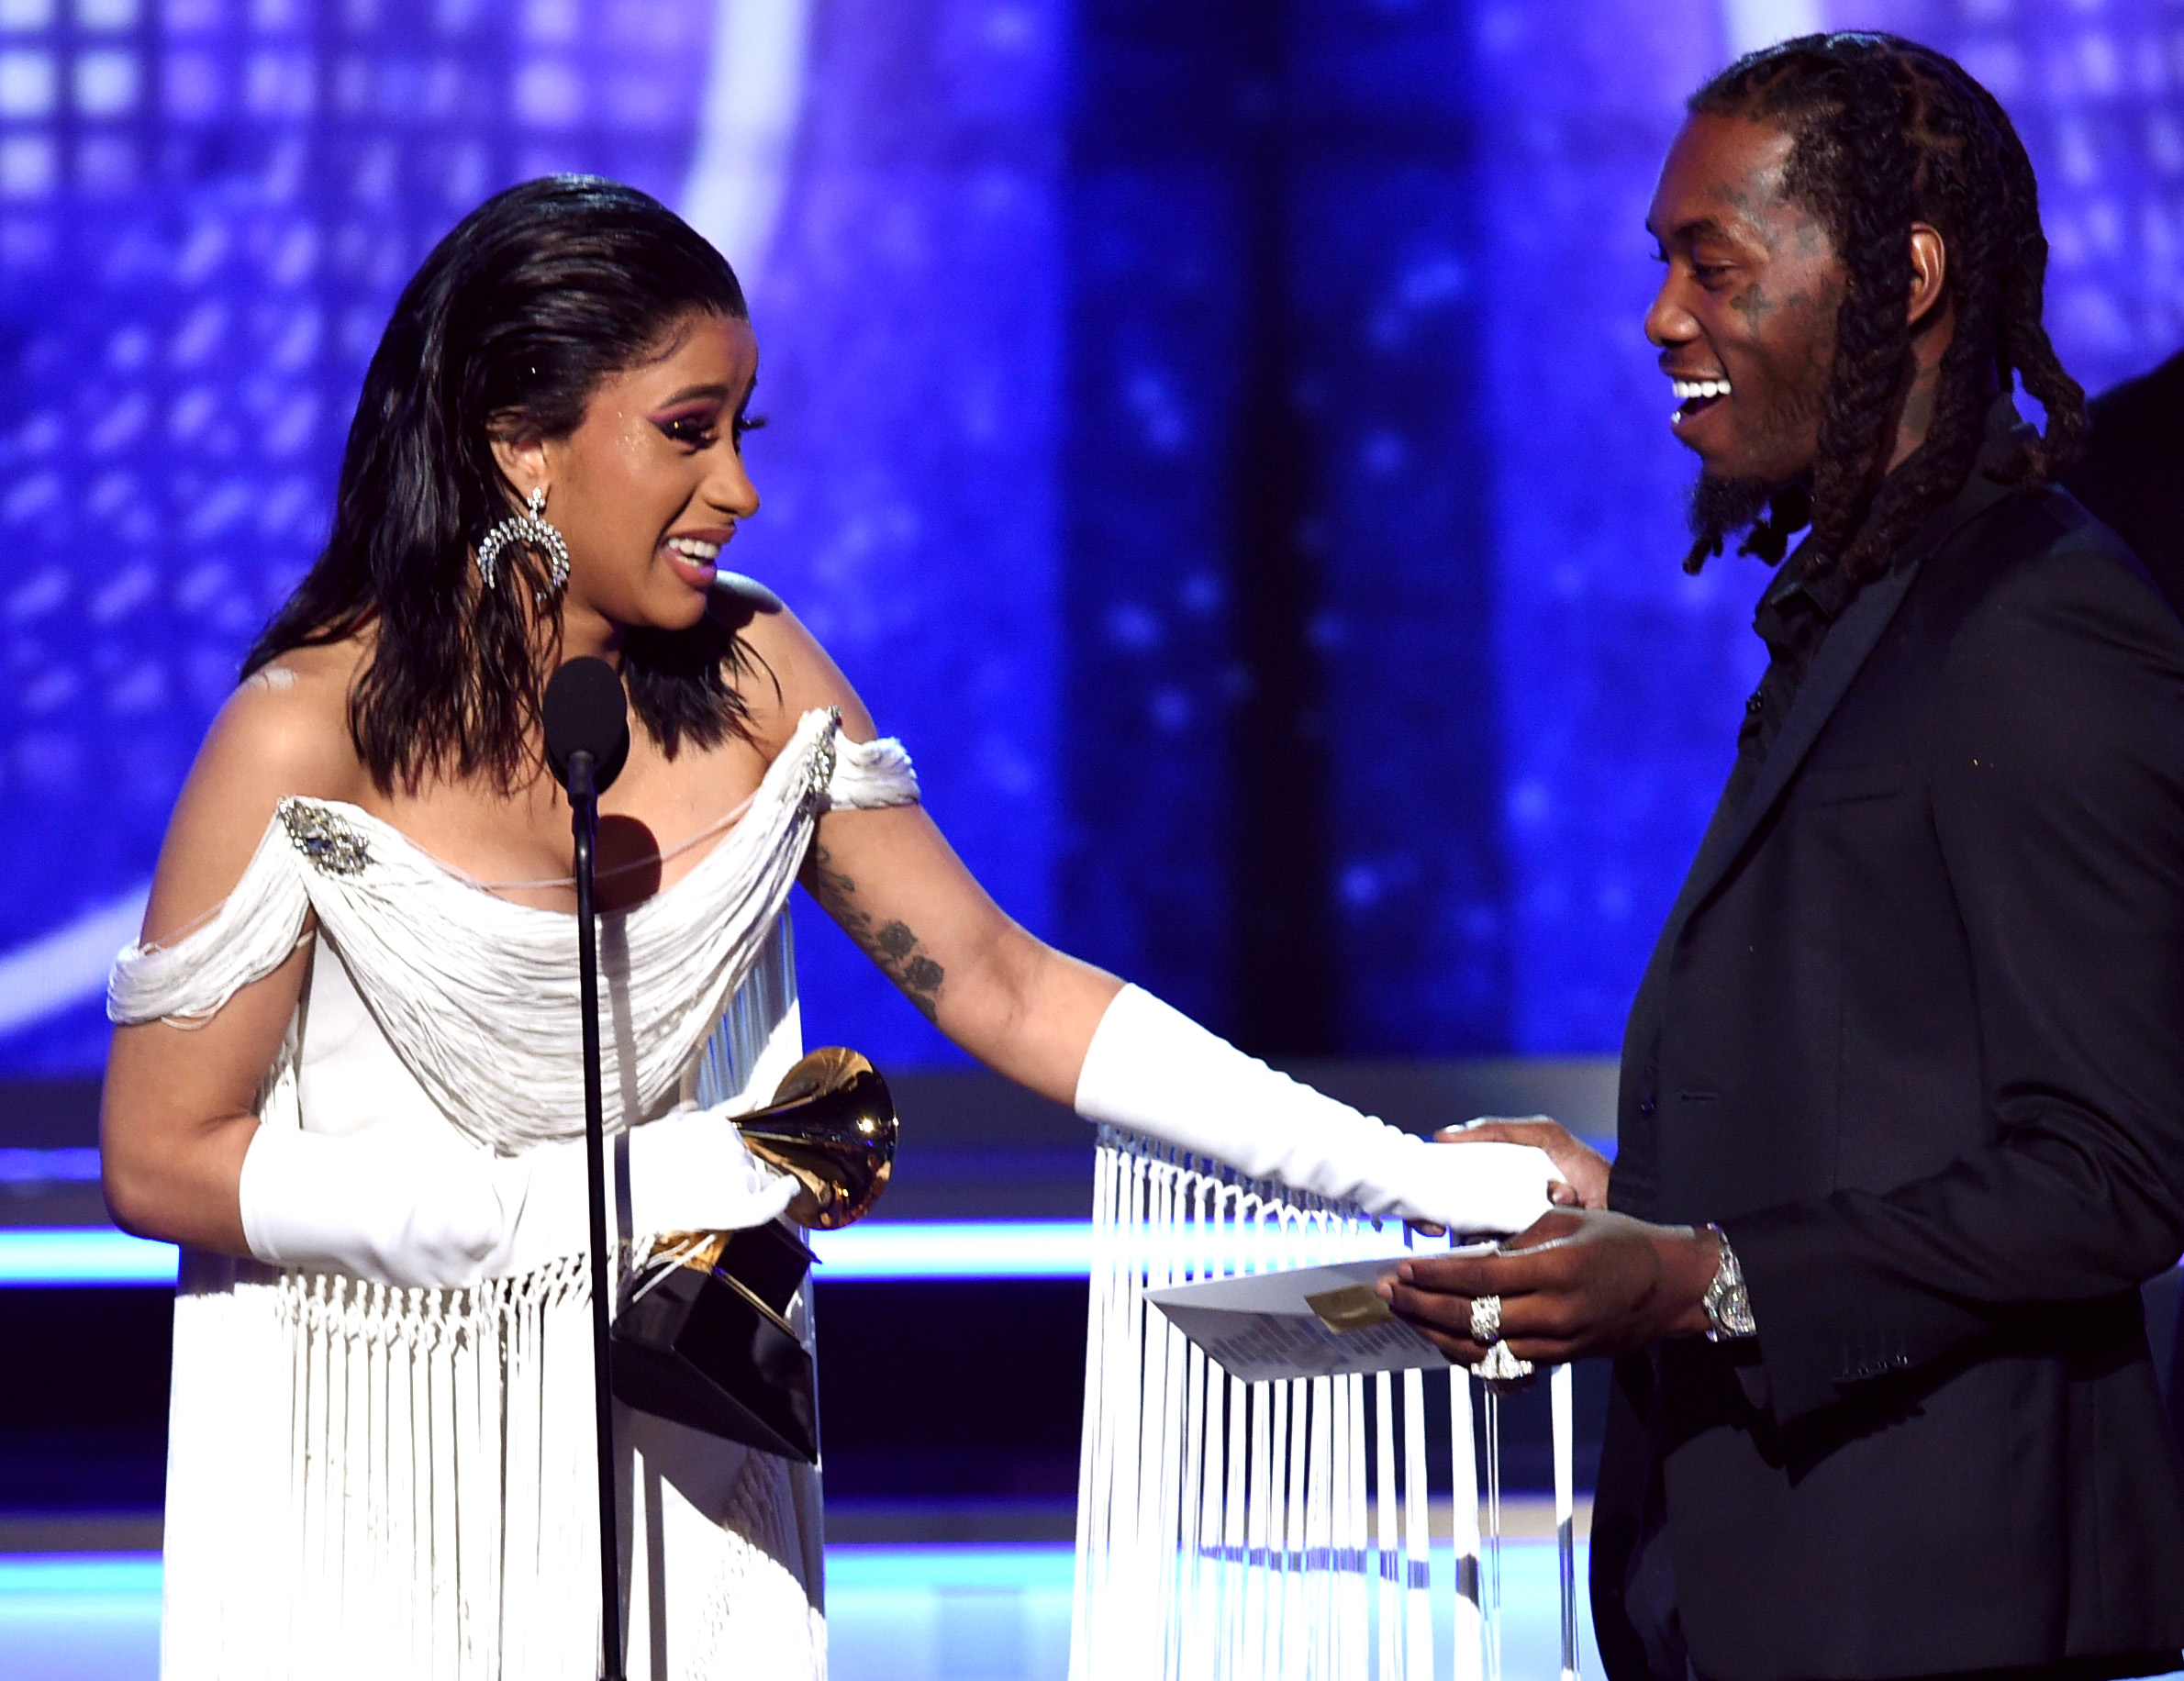 """Cardi B and Offset accept the best rap album award for """"Invasion of Privacy"""" onstage during the Grammys."""